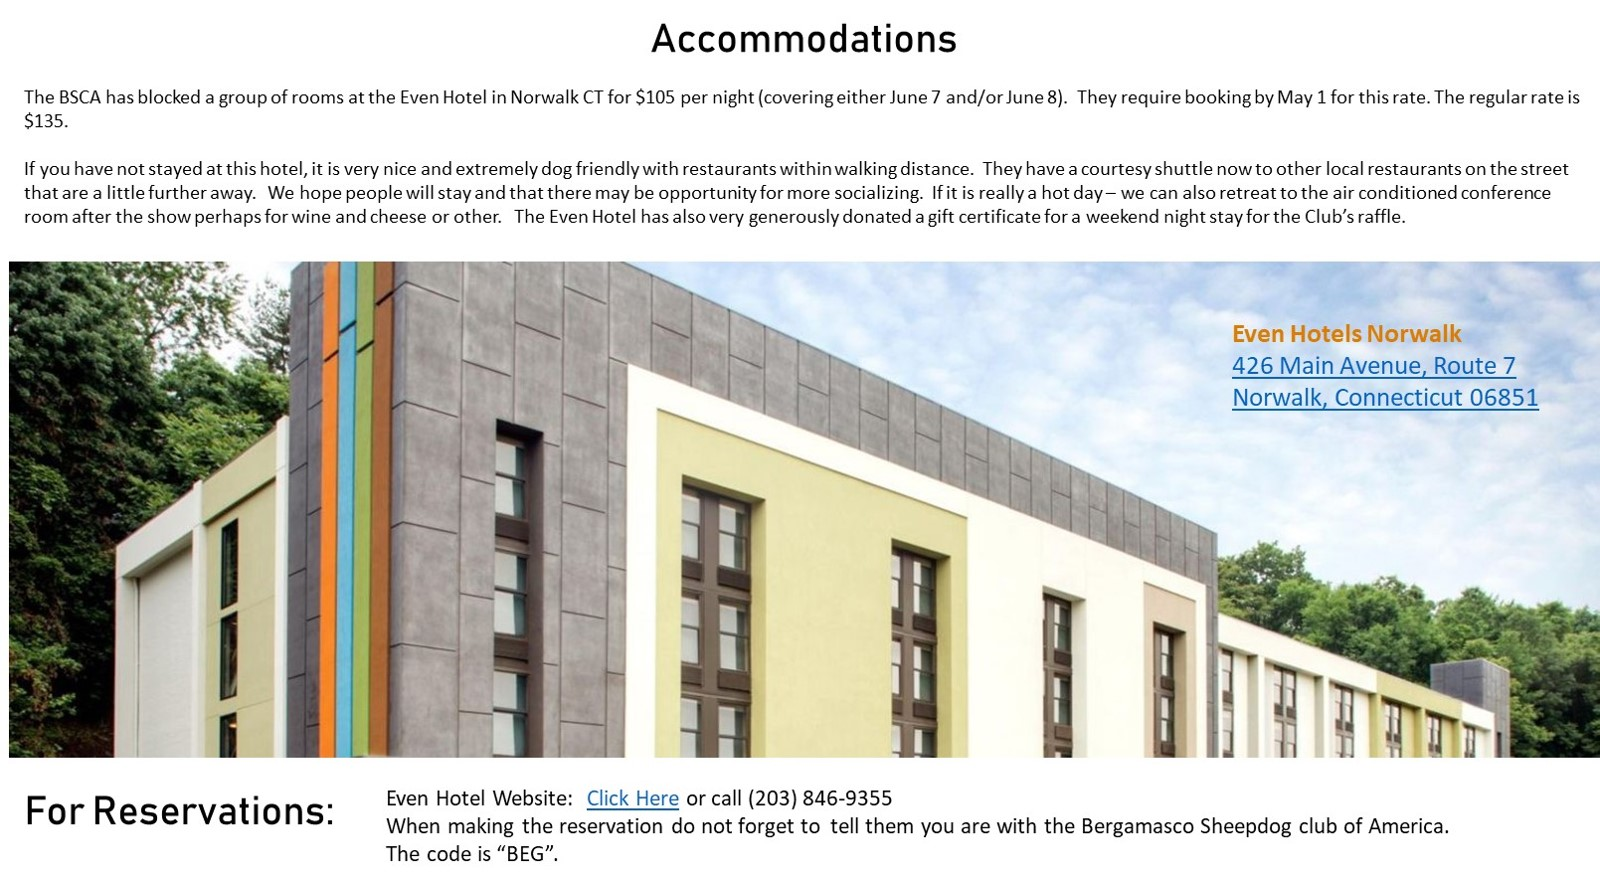 Accommodations - Click Here for Details